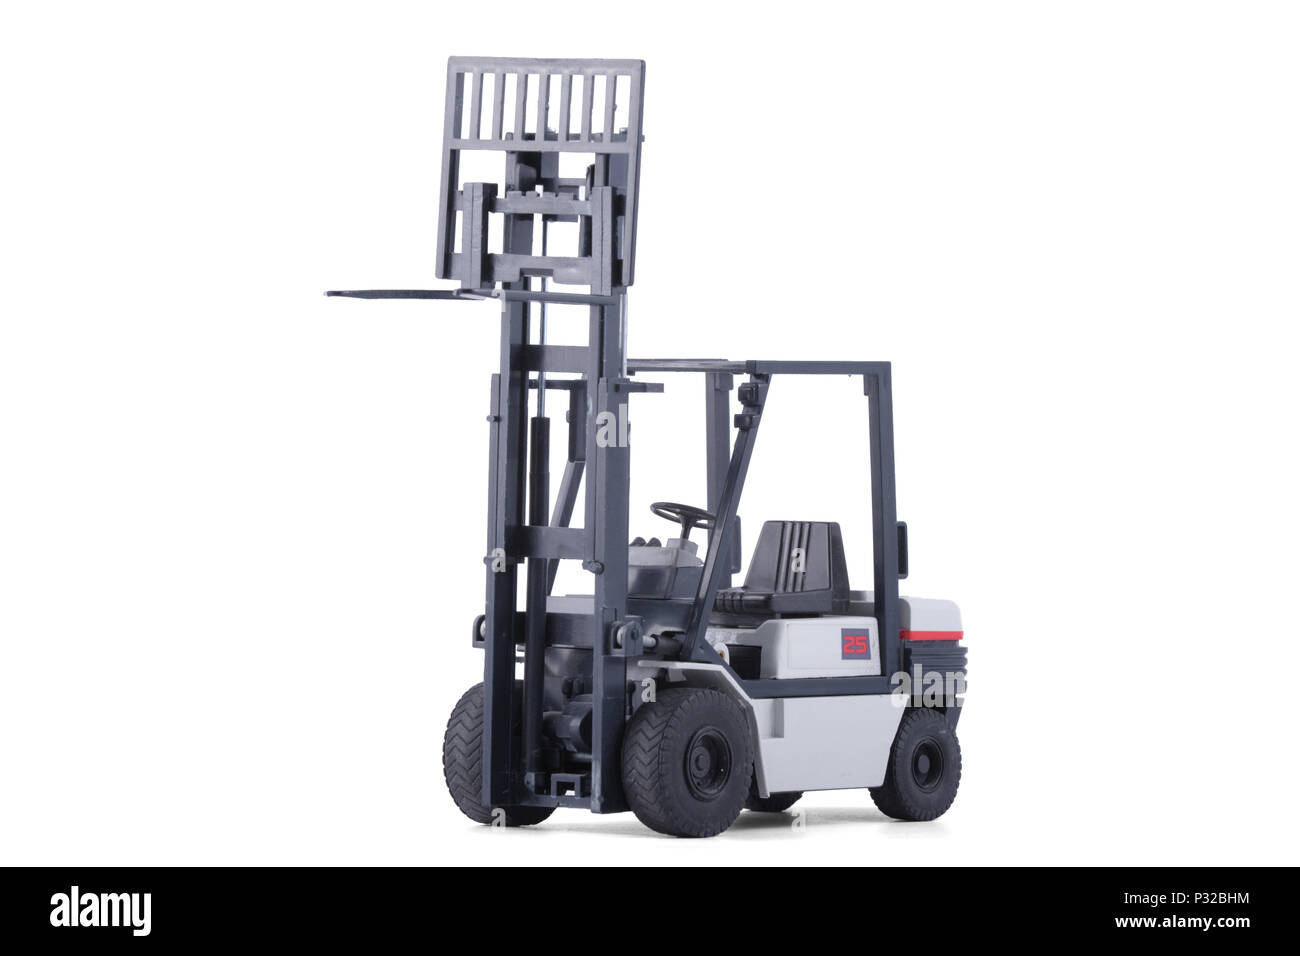 The Small grey forklift scale model. - Stock Image